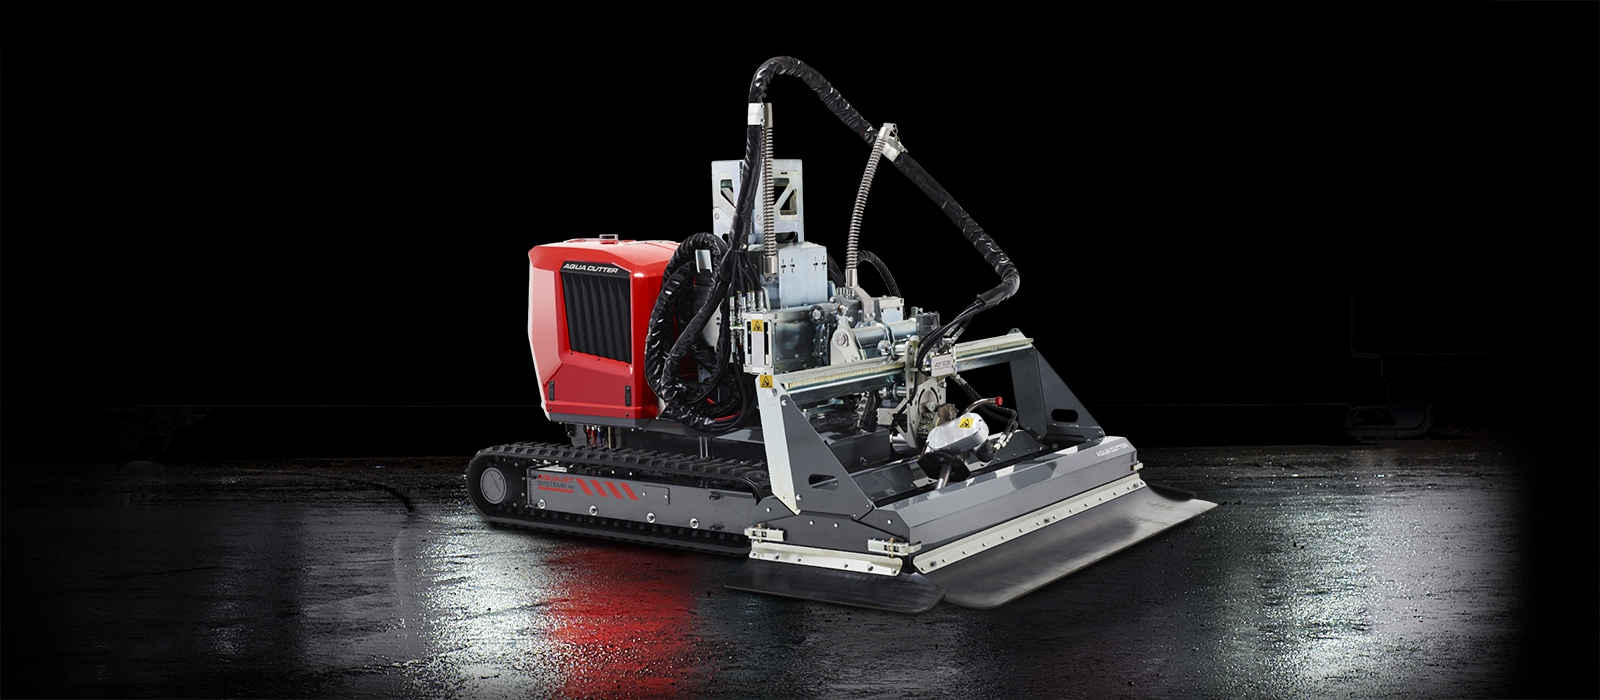 aqua cutter 710ve electric hydrodemolition robot industrial cleaning